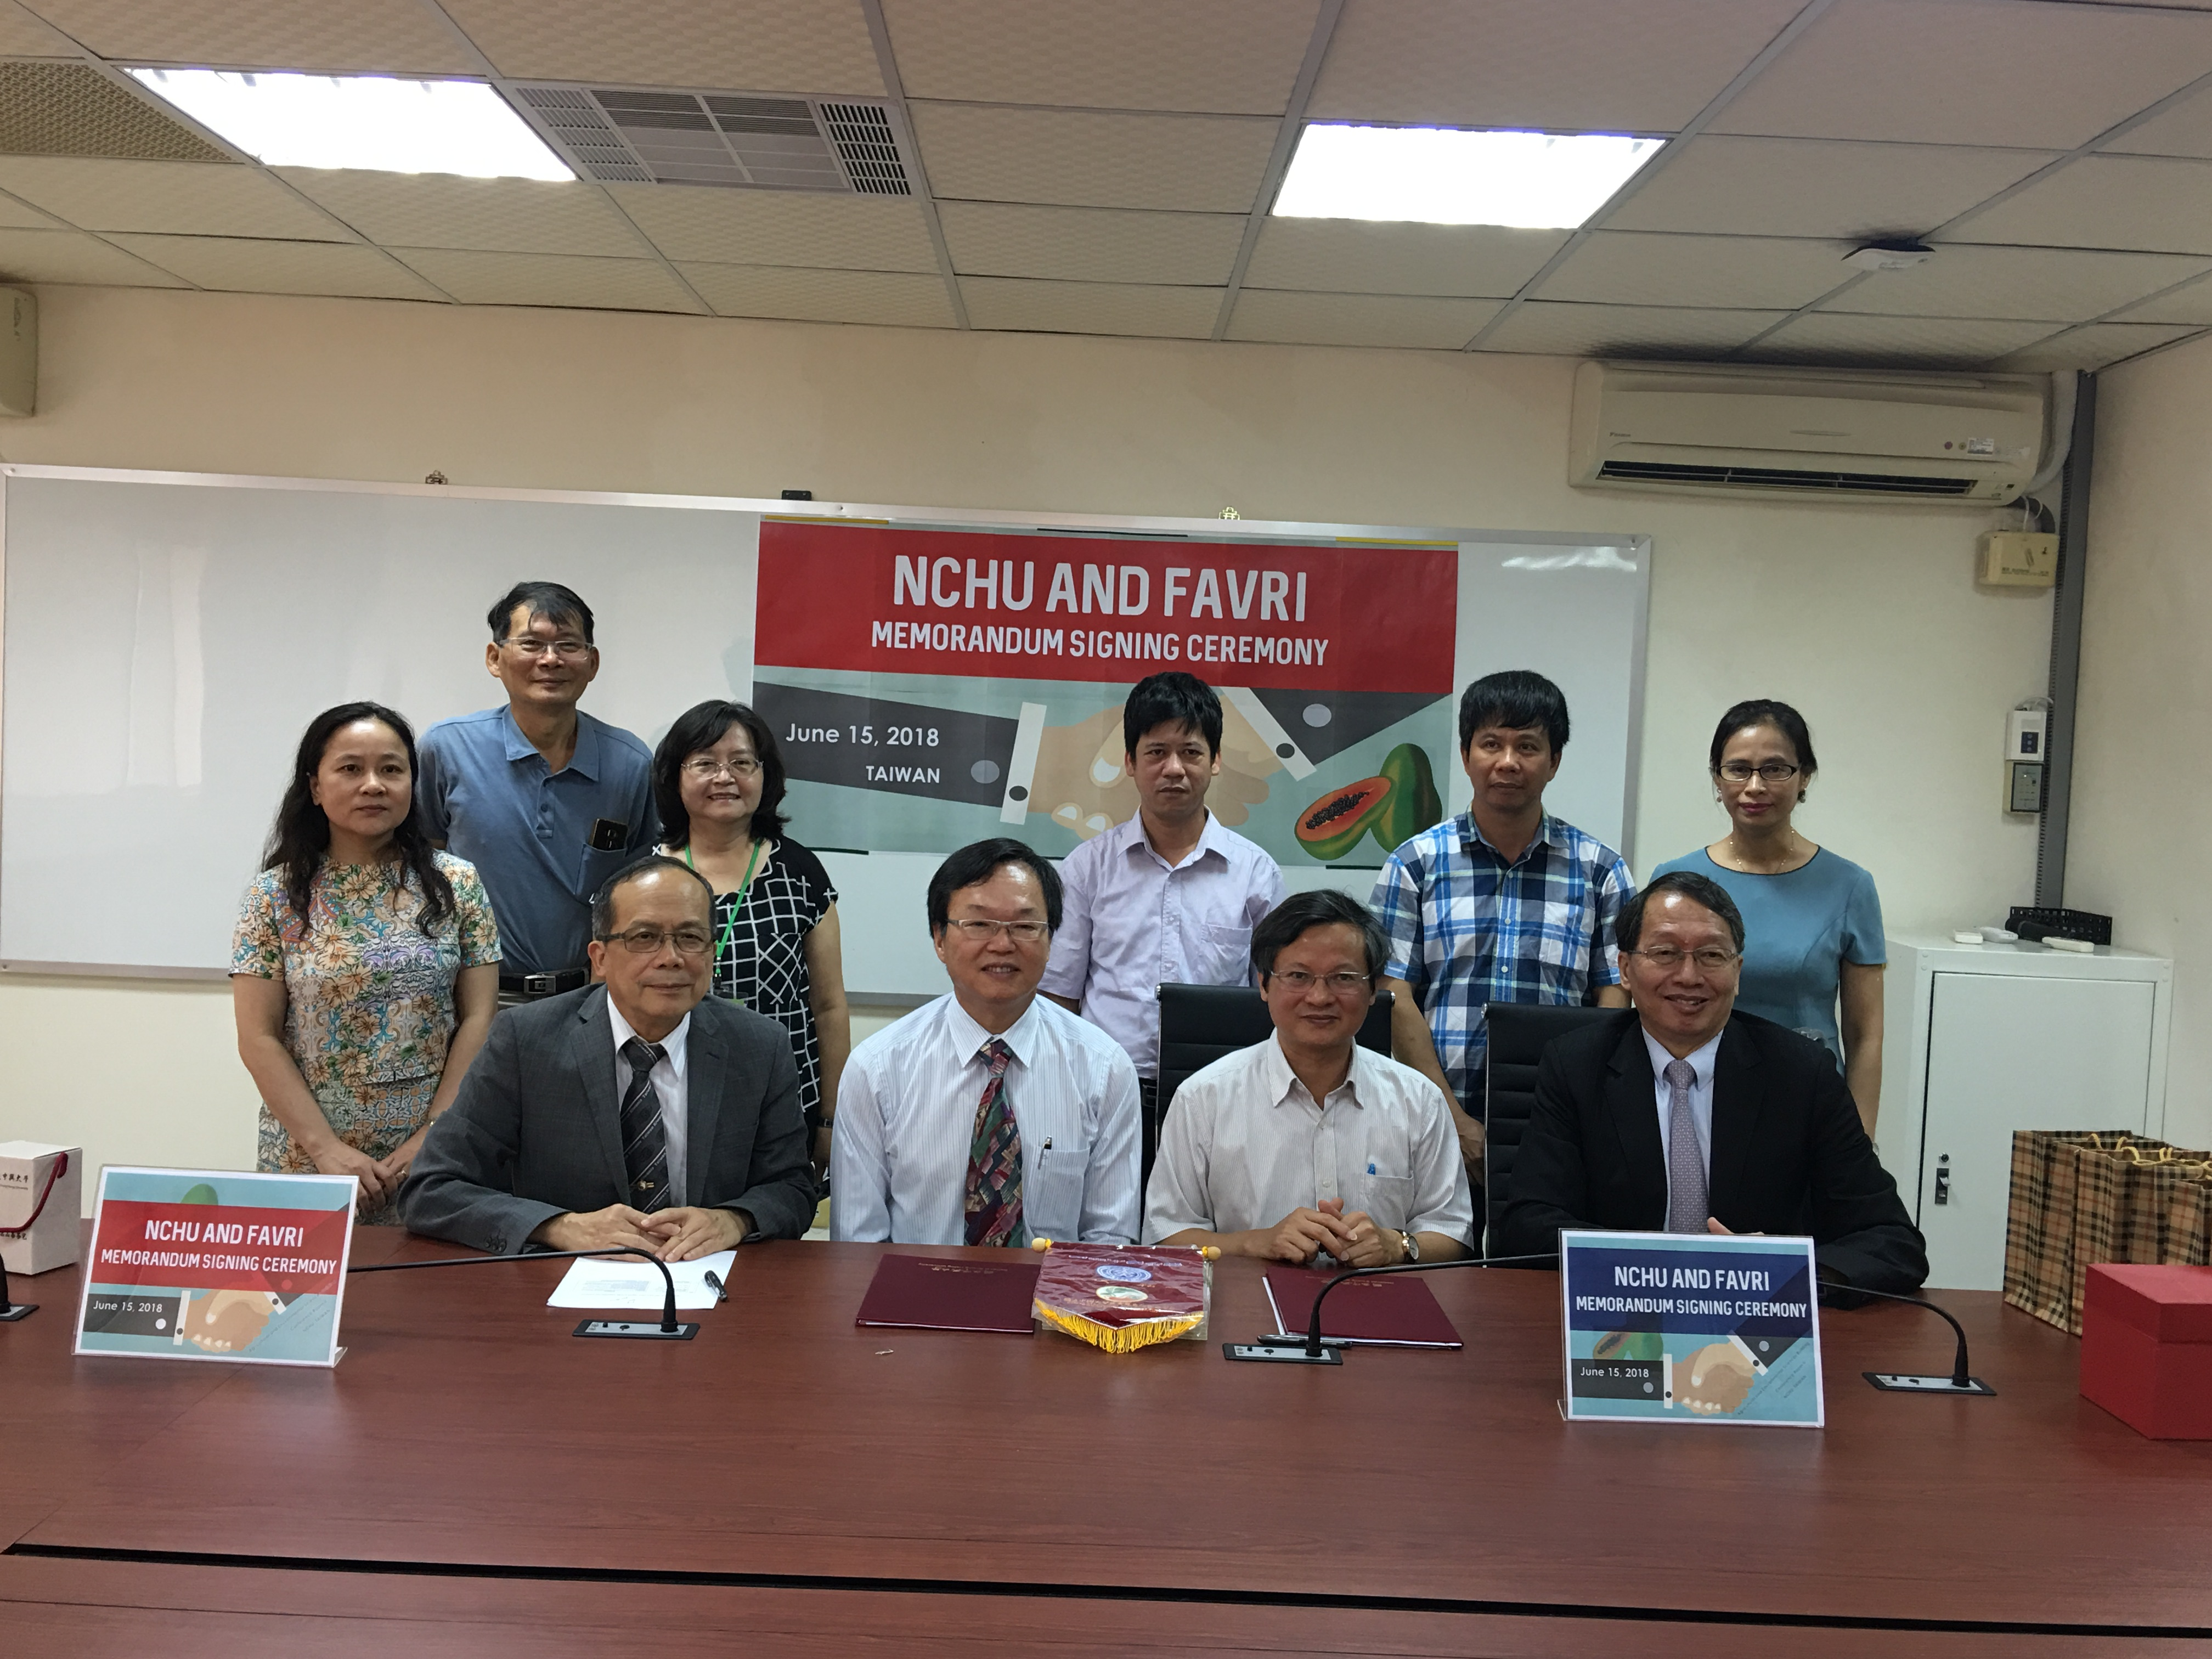 Vietnam Fruit and Vegetable Research Institute and College of Agricultural and Natural Resources of NCHU signed a memorandum of cooperation.